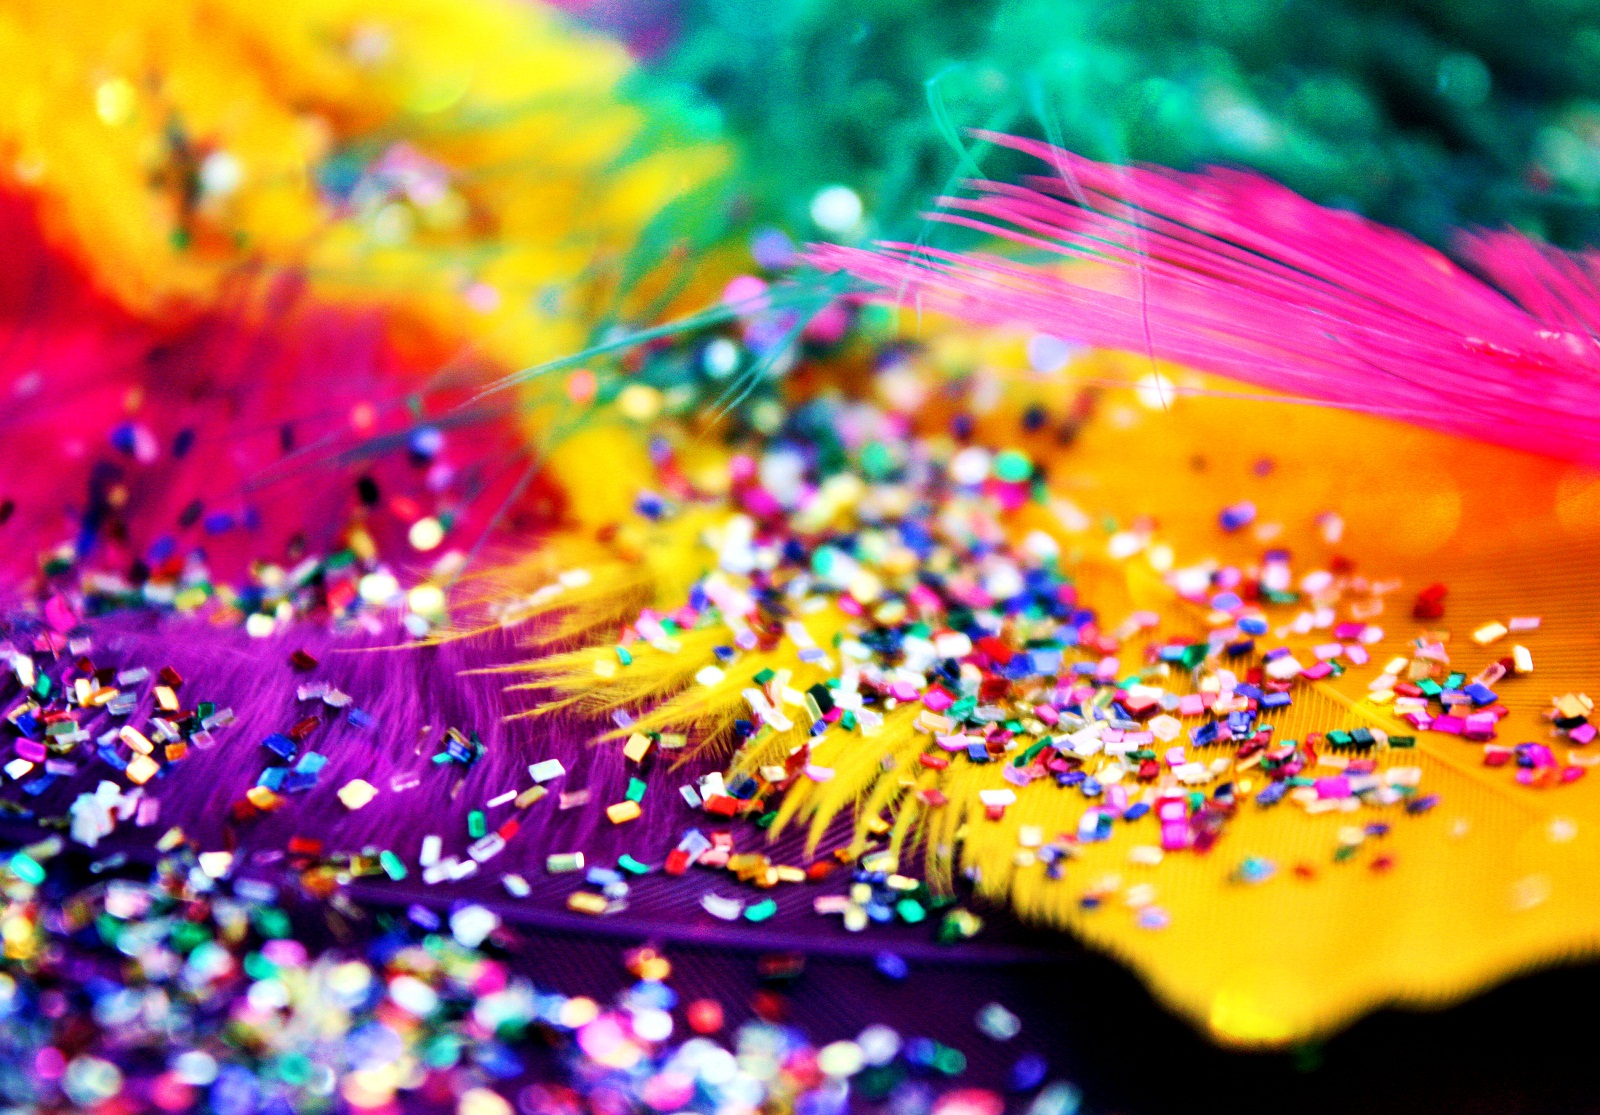 Abstract Beautiful Colorful Wallpaper   Colorful ...